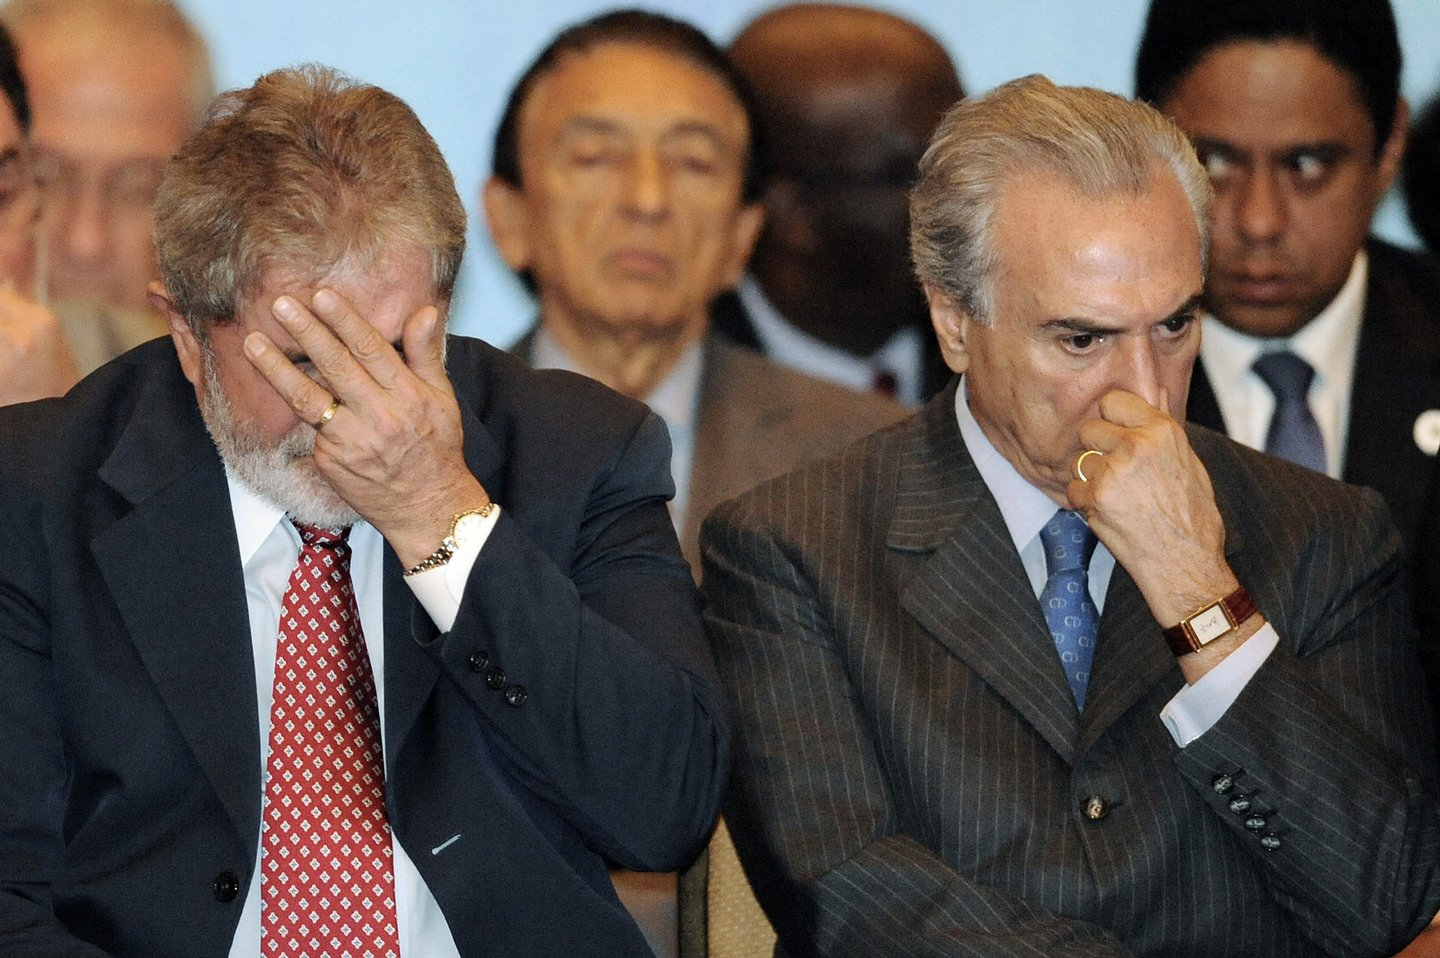 Brazilian President Luiz Inacio Lula da Silva (L) and lower house President Michel Temer attend the launching ceremony of the second-phase of Brazil?s Growth Acceleration Program (PAC2), in Brasilia, on March 29, 2010. The PAC2 foresees private and public investments of USD 529 billion between 2011 and 2014. AFP PHOTO/Evaristo SA (Photo credit should read EVARISTO SA/AFP/Getty Images)